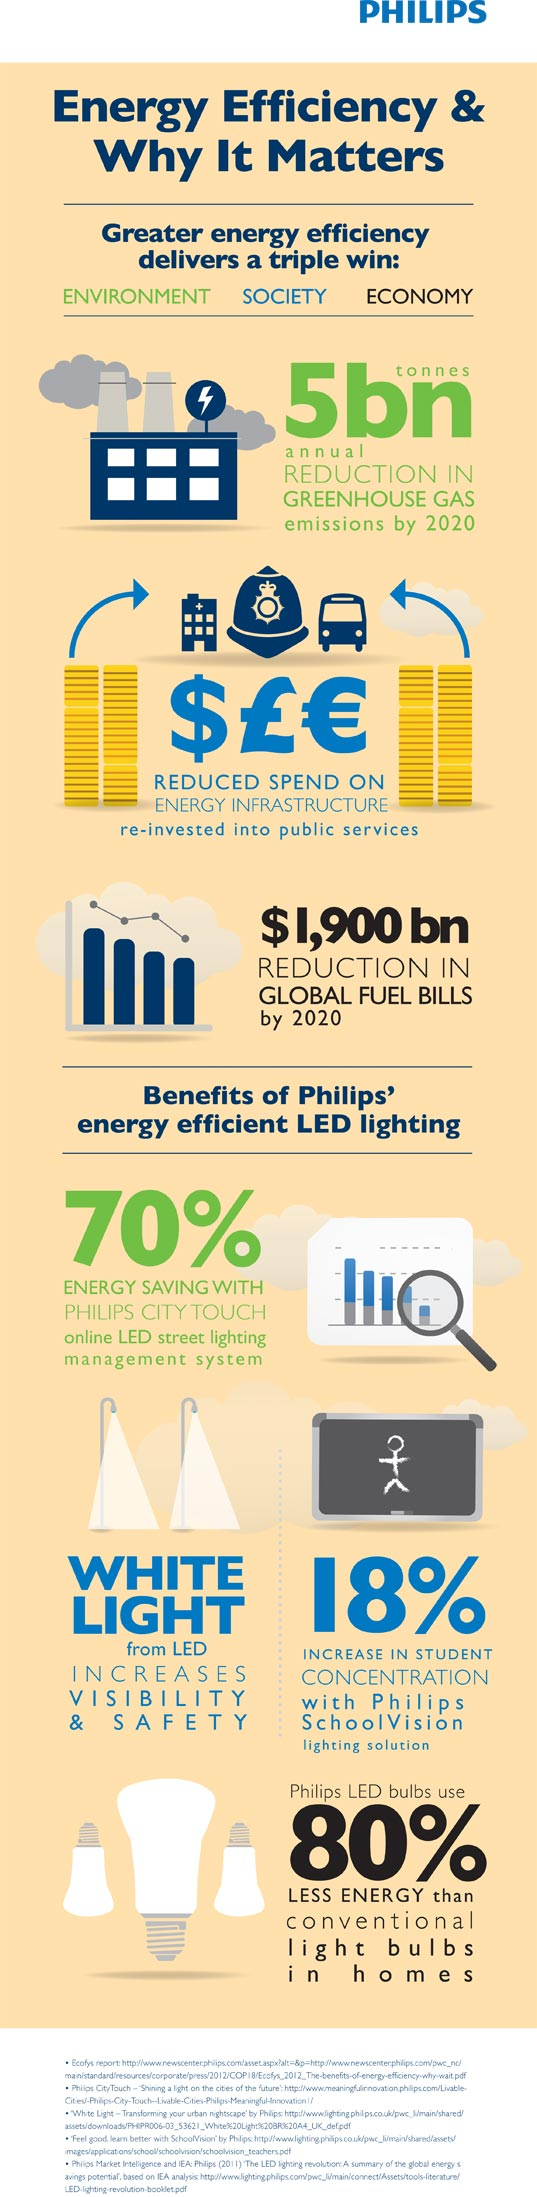 Philips, energy efficiency, cop 19, climate change, global warming, infographic, typhoon haiyan, led, led lighting, energy-efficient lighting